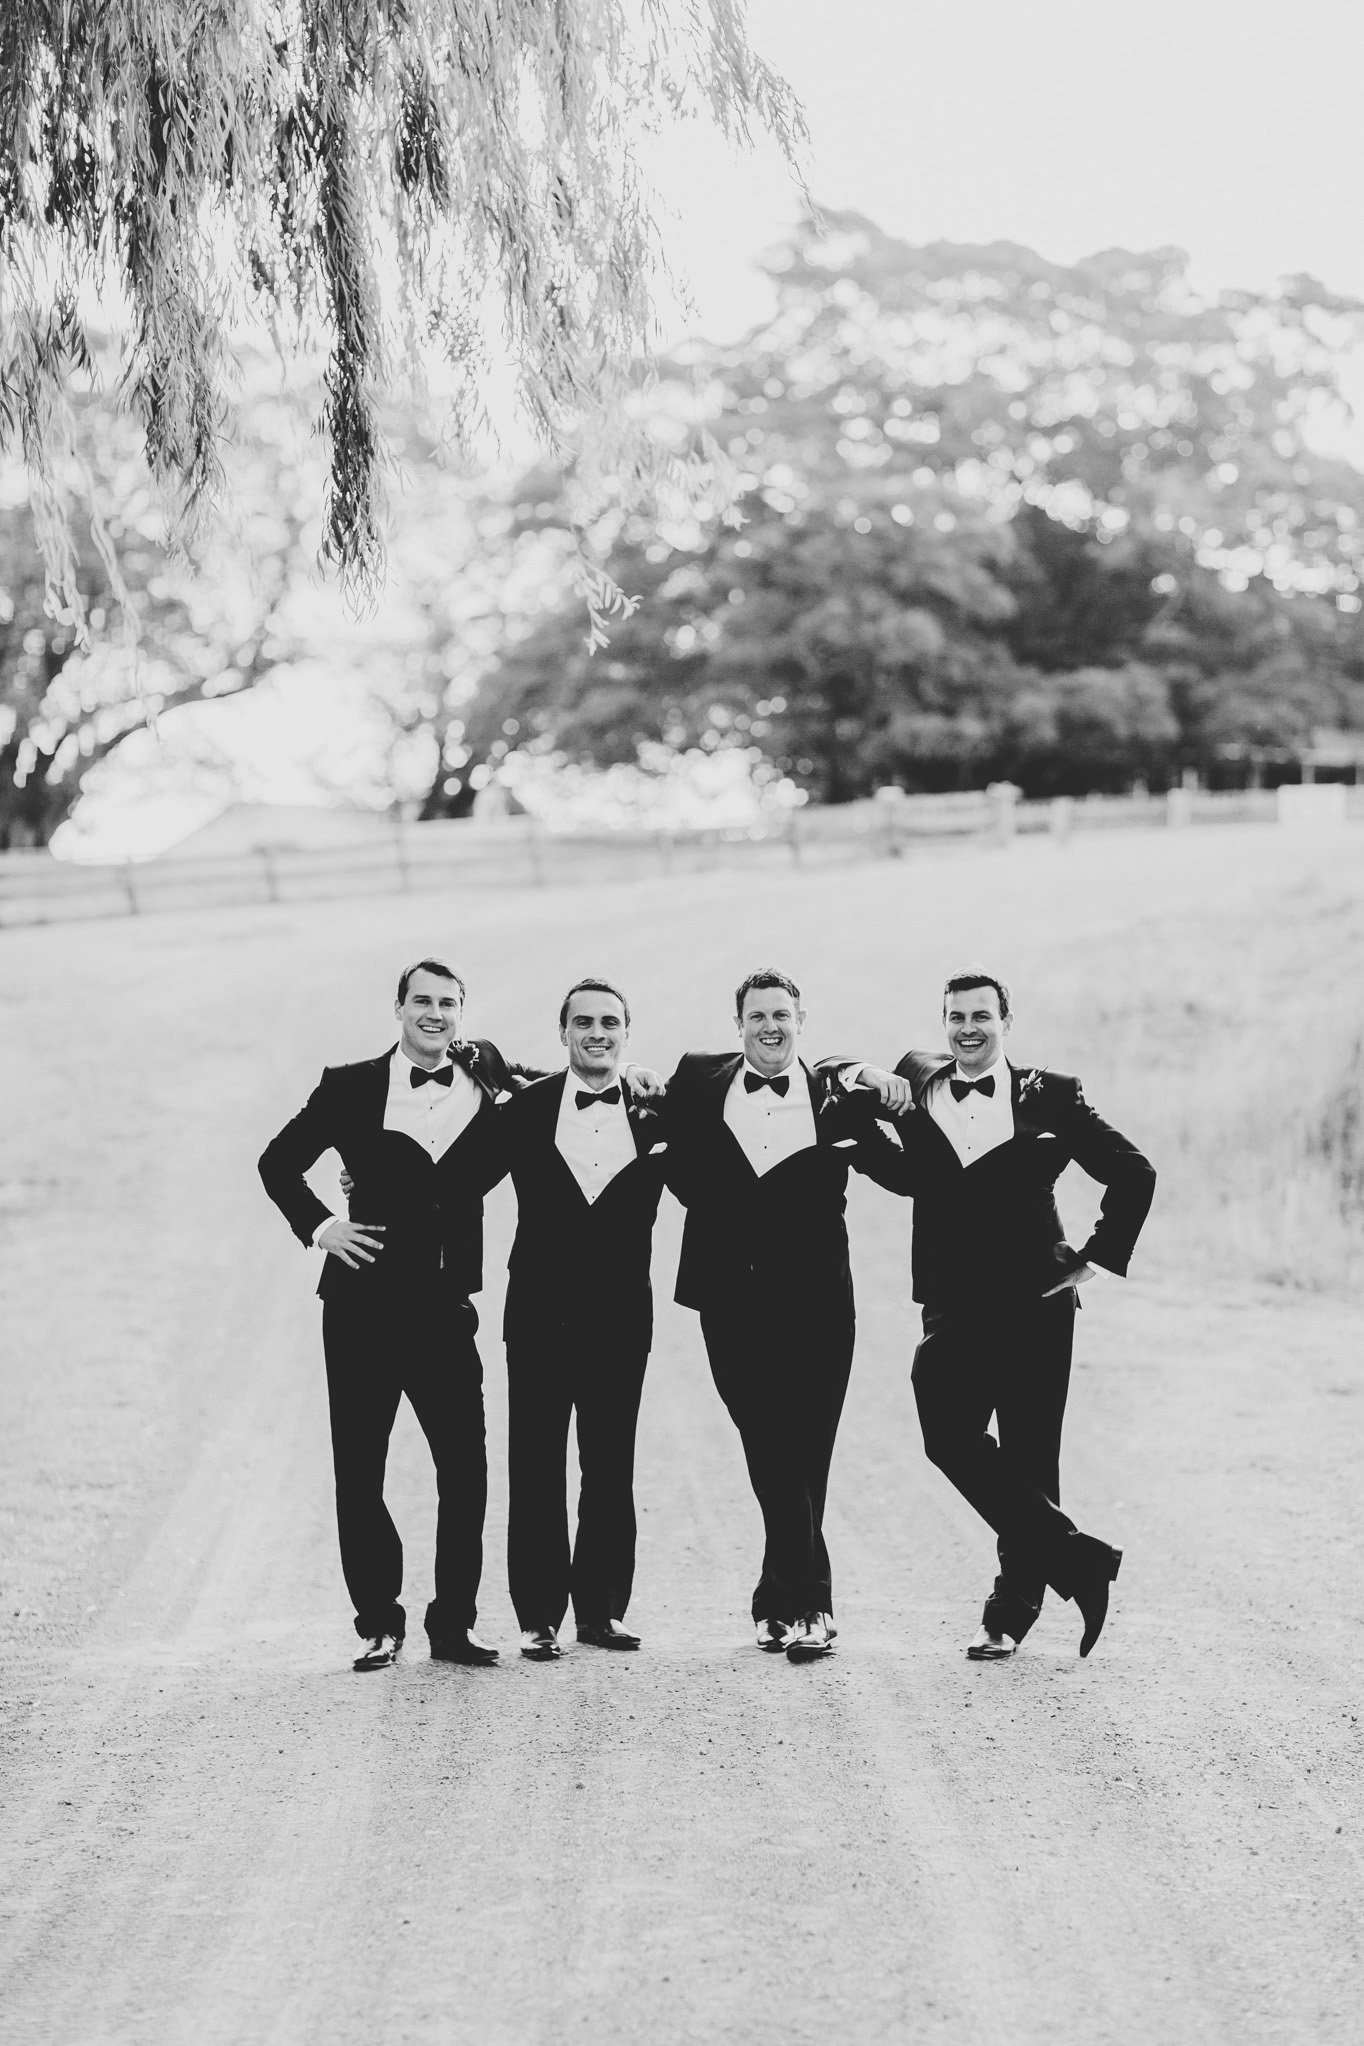 TocalHomestead_WeddingPhotography_LaurenAnnePhotography-1091.jpg